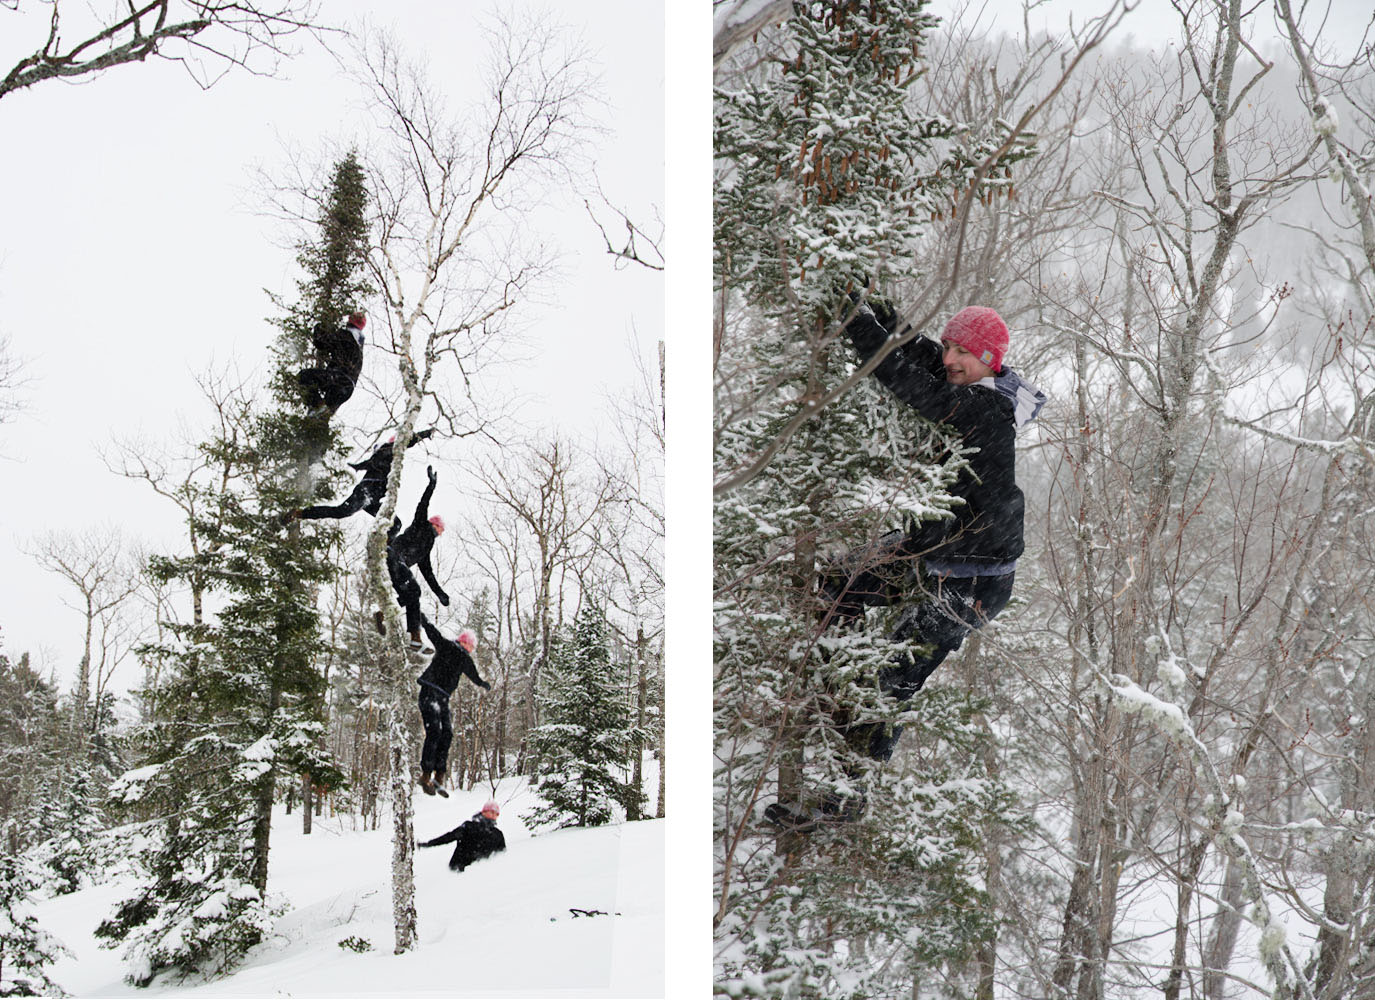 Climbing trees and then jumping out of them